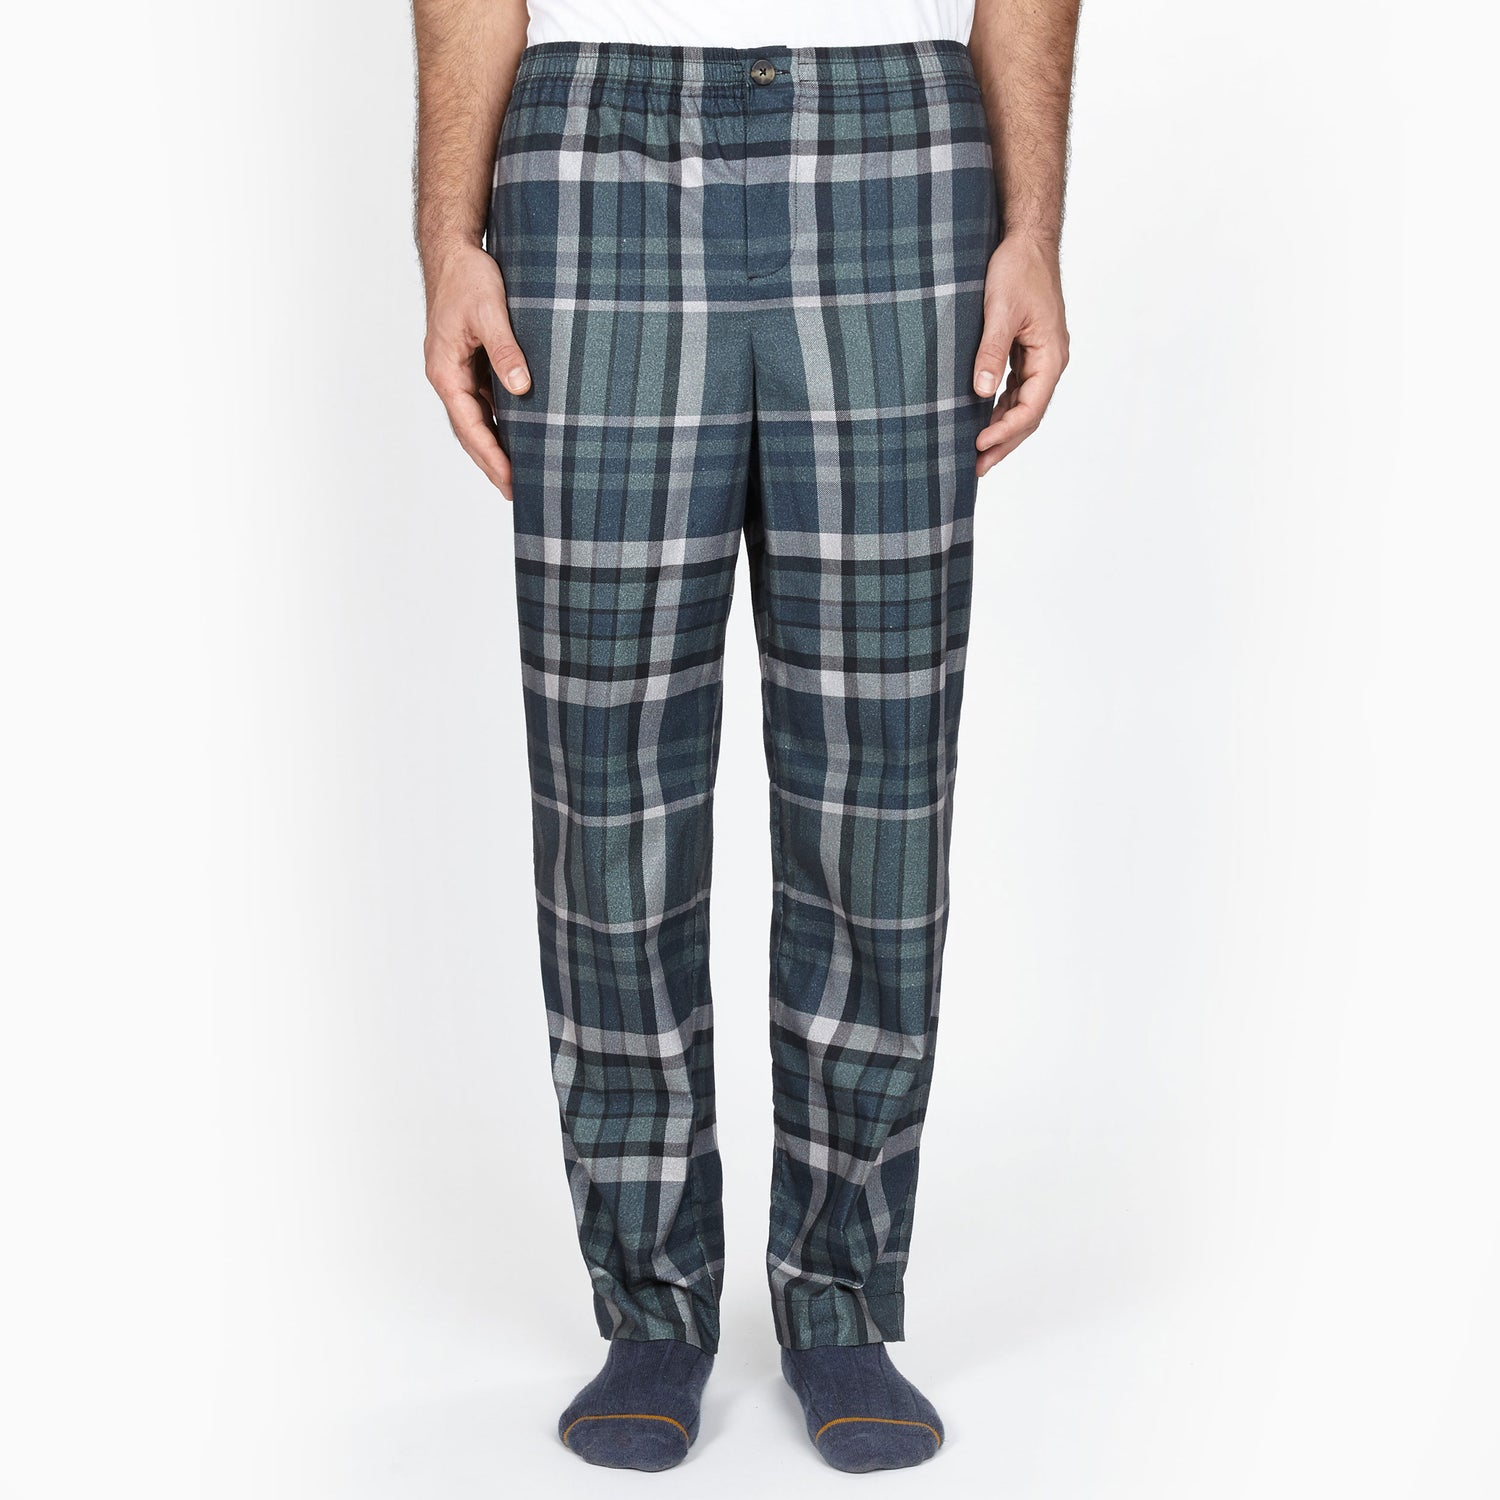 The Greek Army Special Forces Plaid Pajama Pant